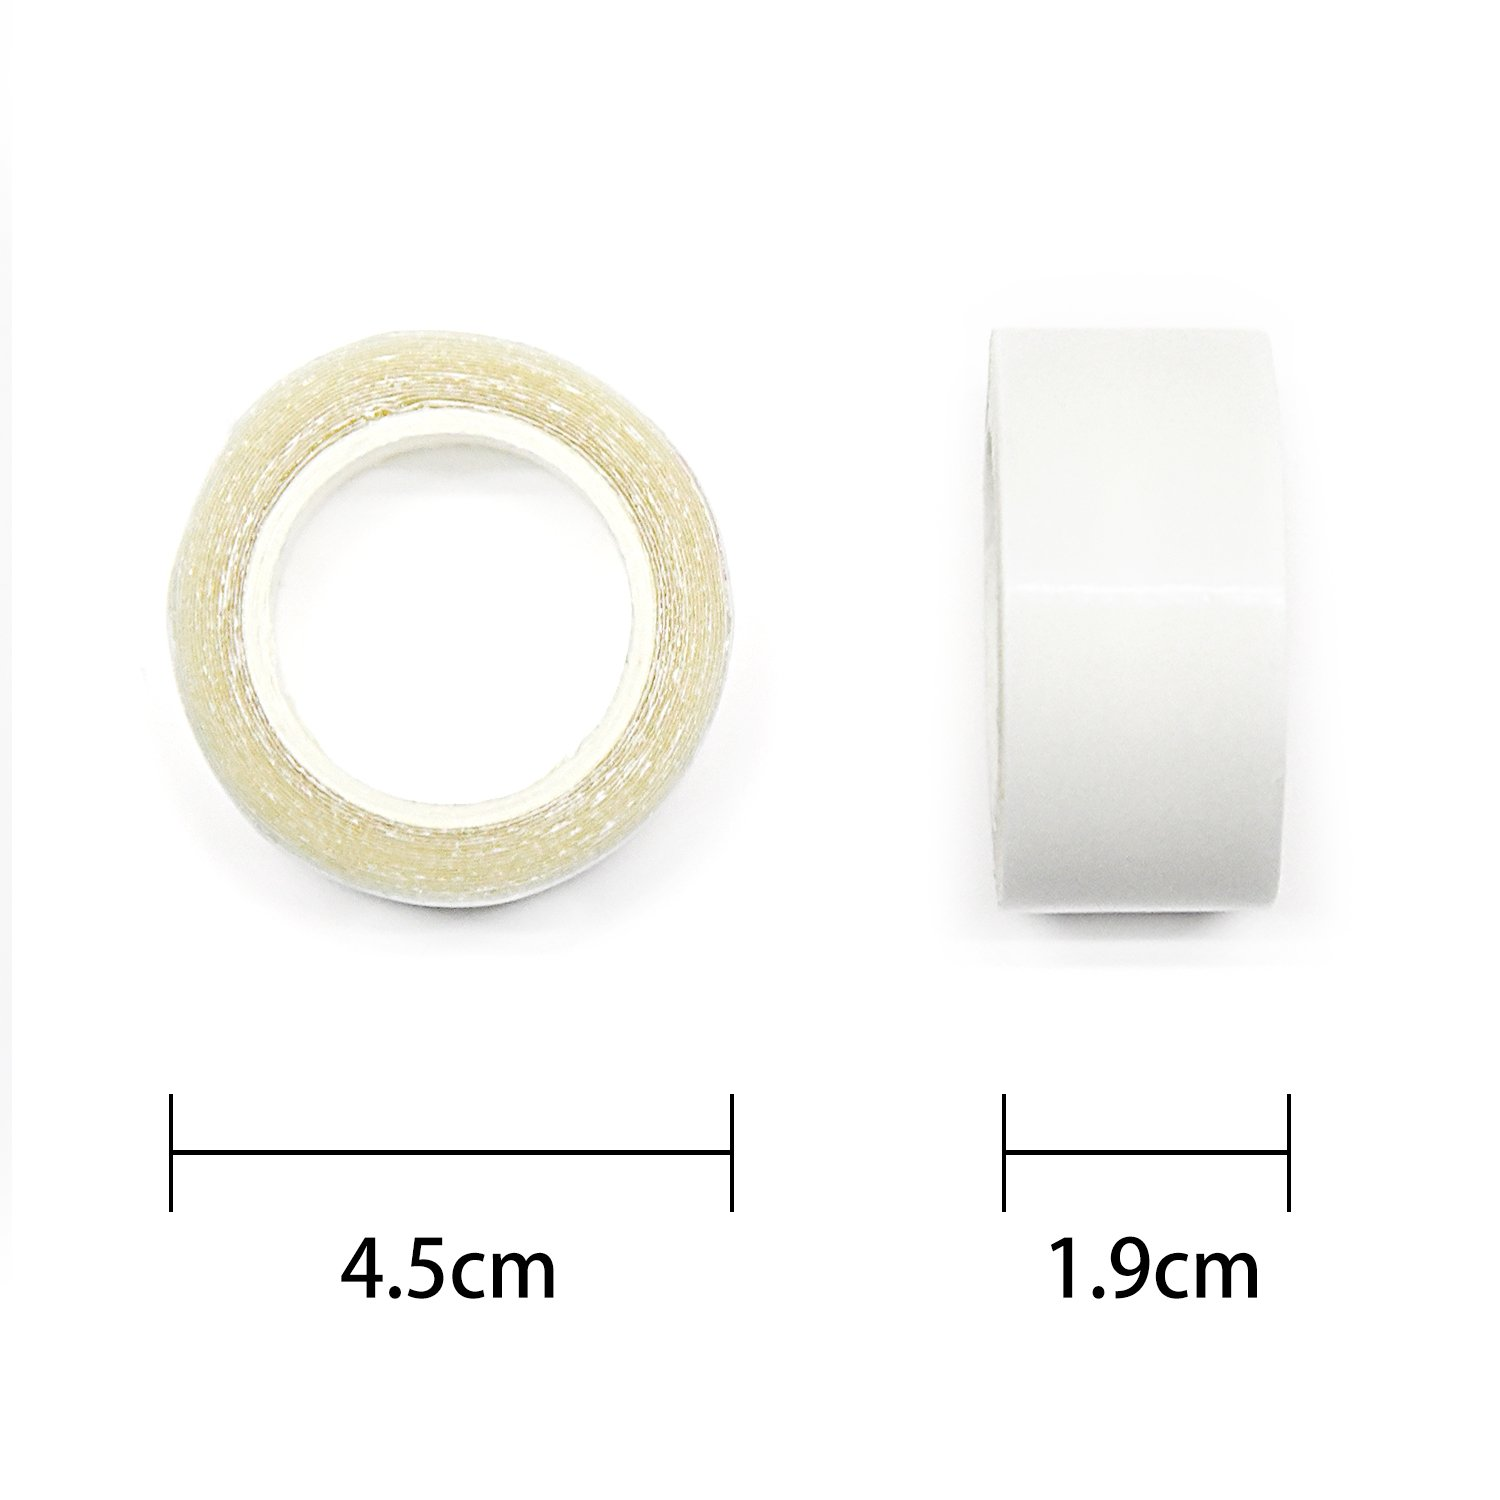 Neitsi 1cmx3Y Double Sided Tape For PU Hair Extension Wig Adhesive Waterproof Clear - White LTD